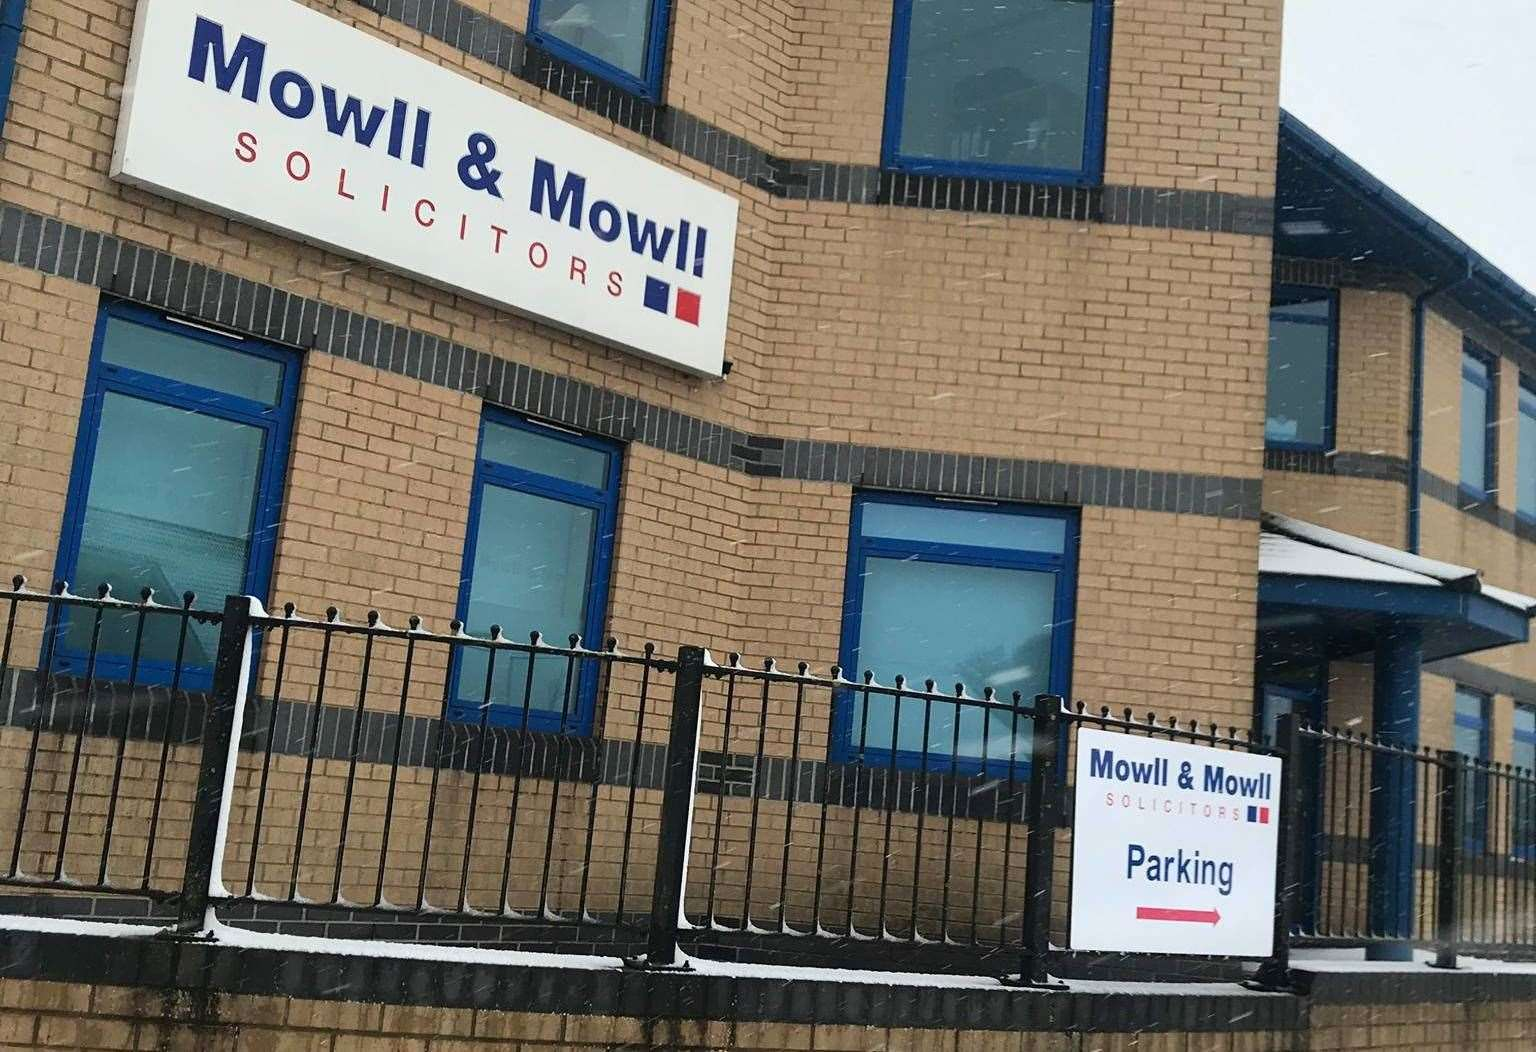 Mowll & Mowll are open for business as usual. Every precaution is being taken to ensure the safety of staff members and visitors during the ongoing Covid-19 pandemic.